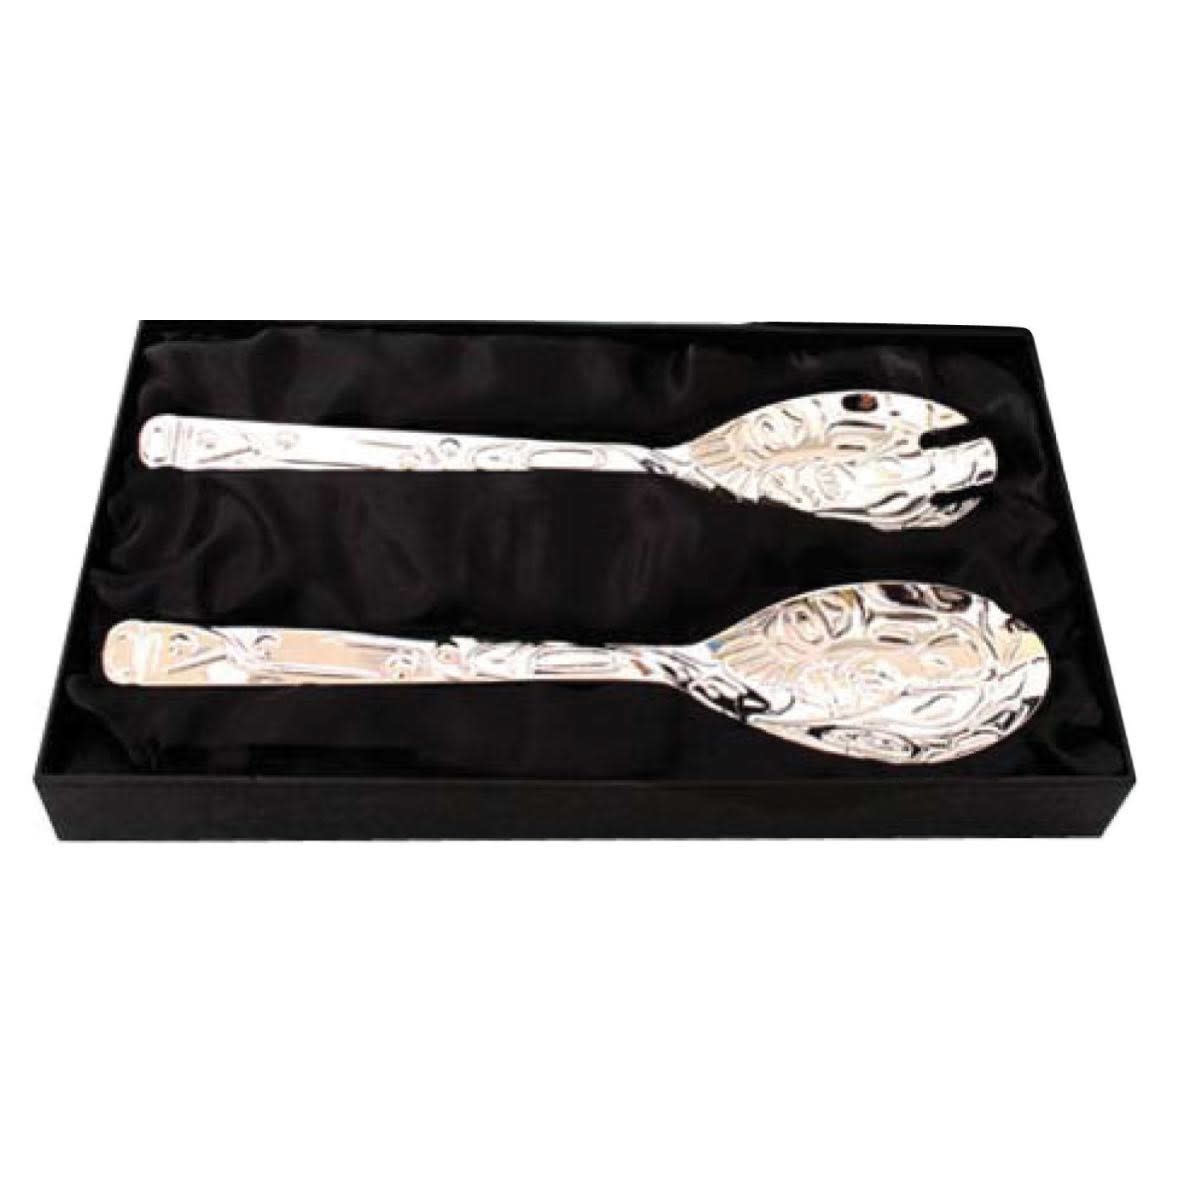 Silver Plated Servers- Salmon by Paul Windsor-1